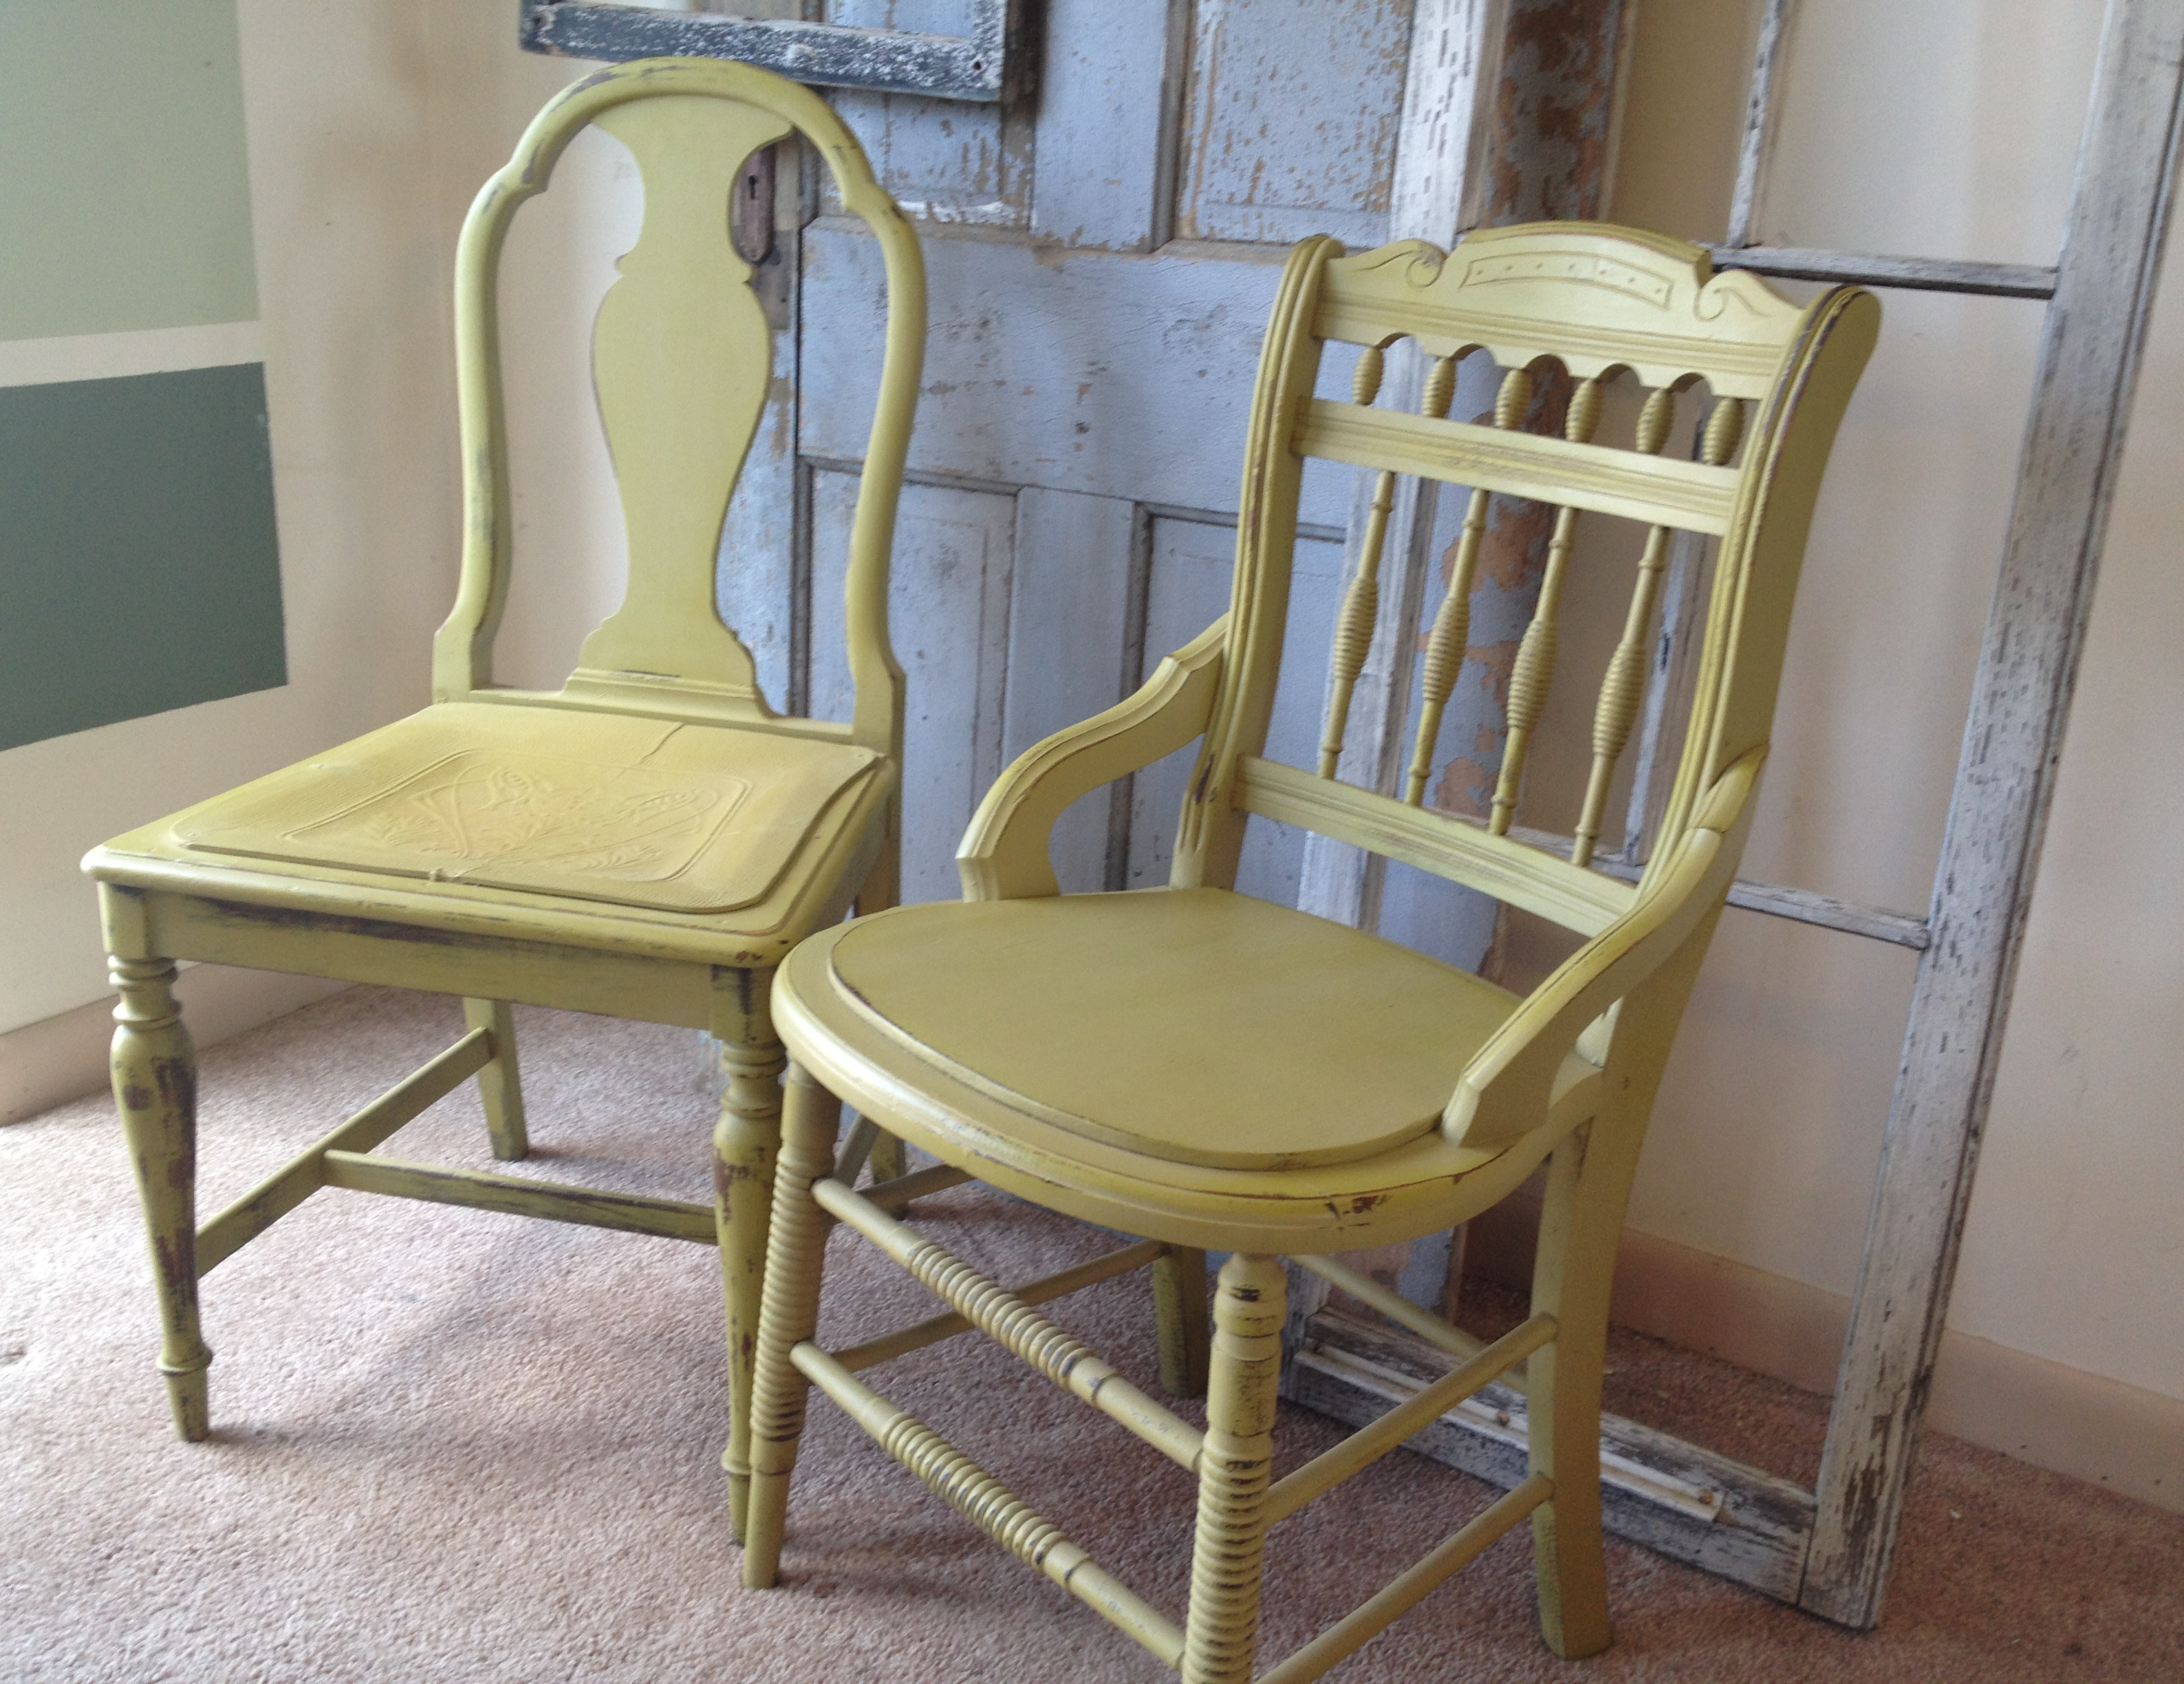 罎笆篏 kitchen chairs winnable kitchen chairs b kitchen chairs